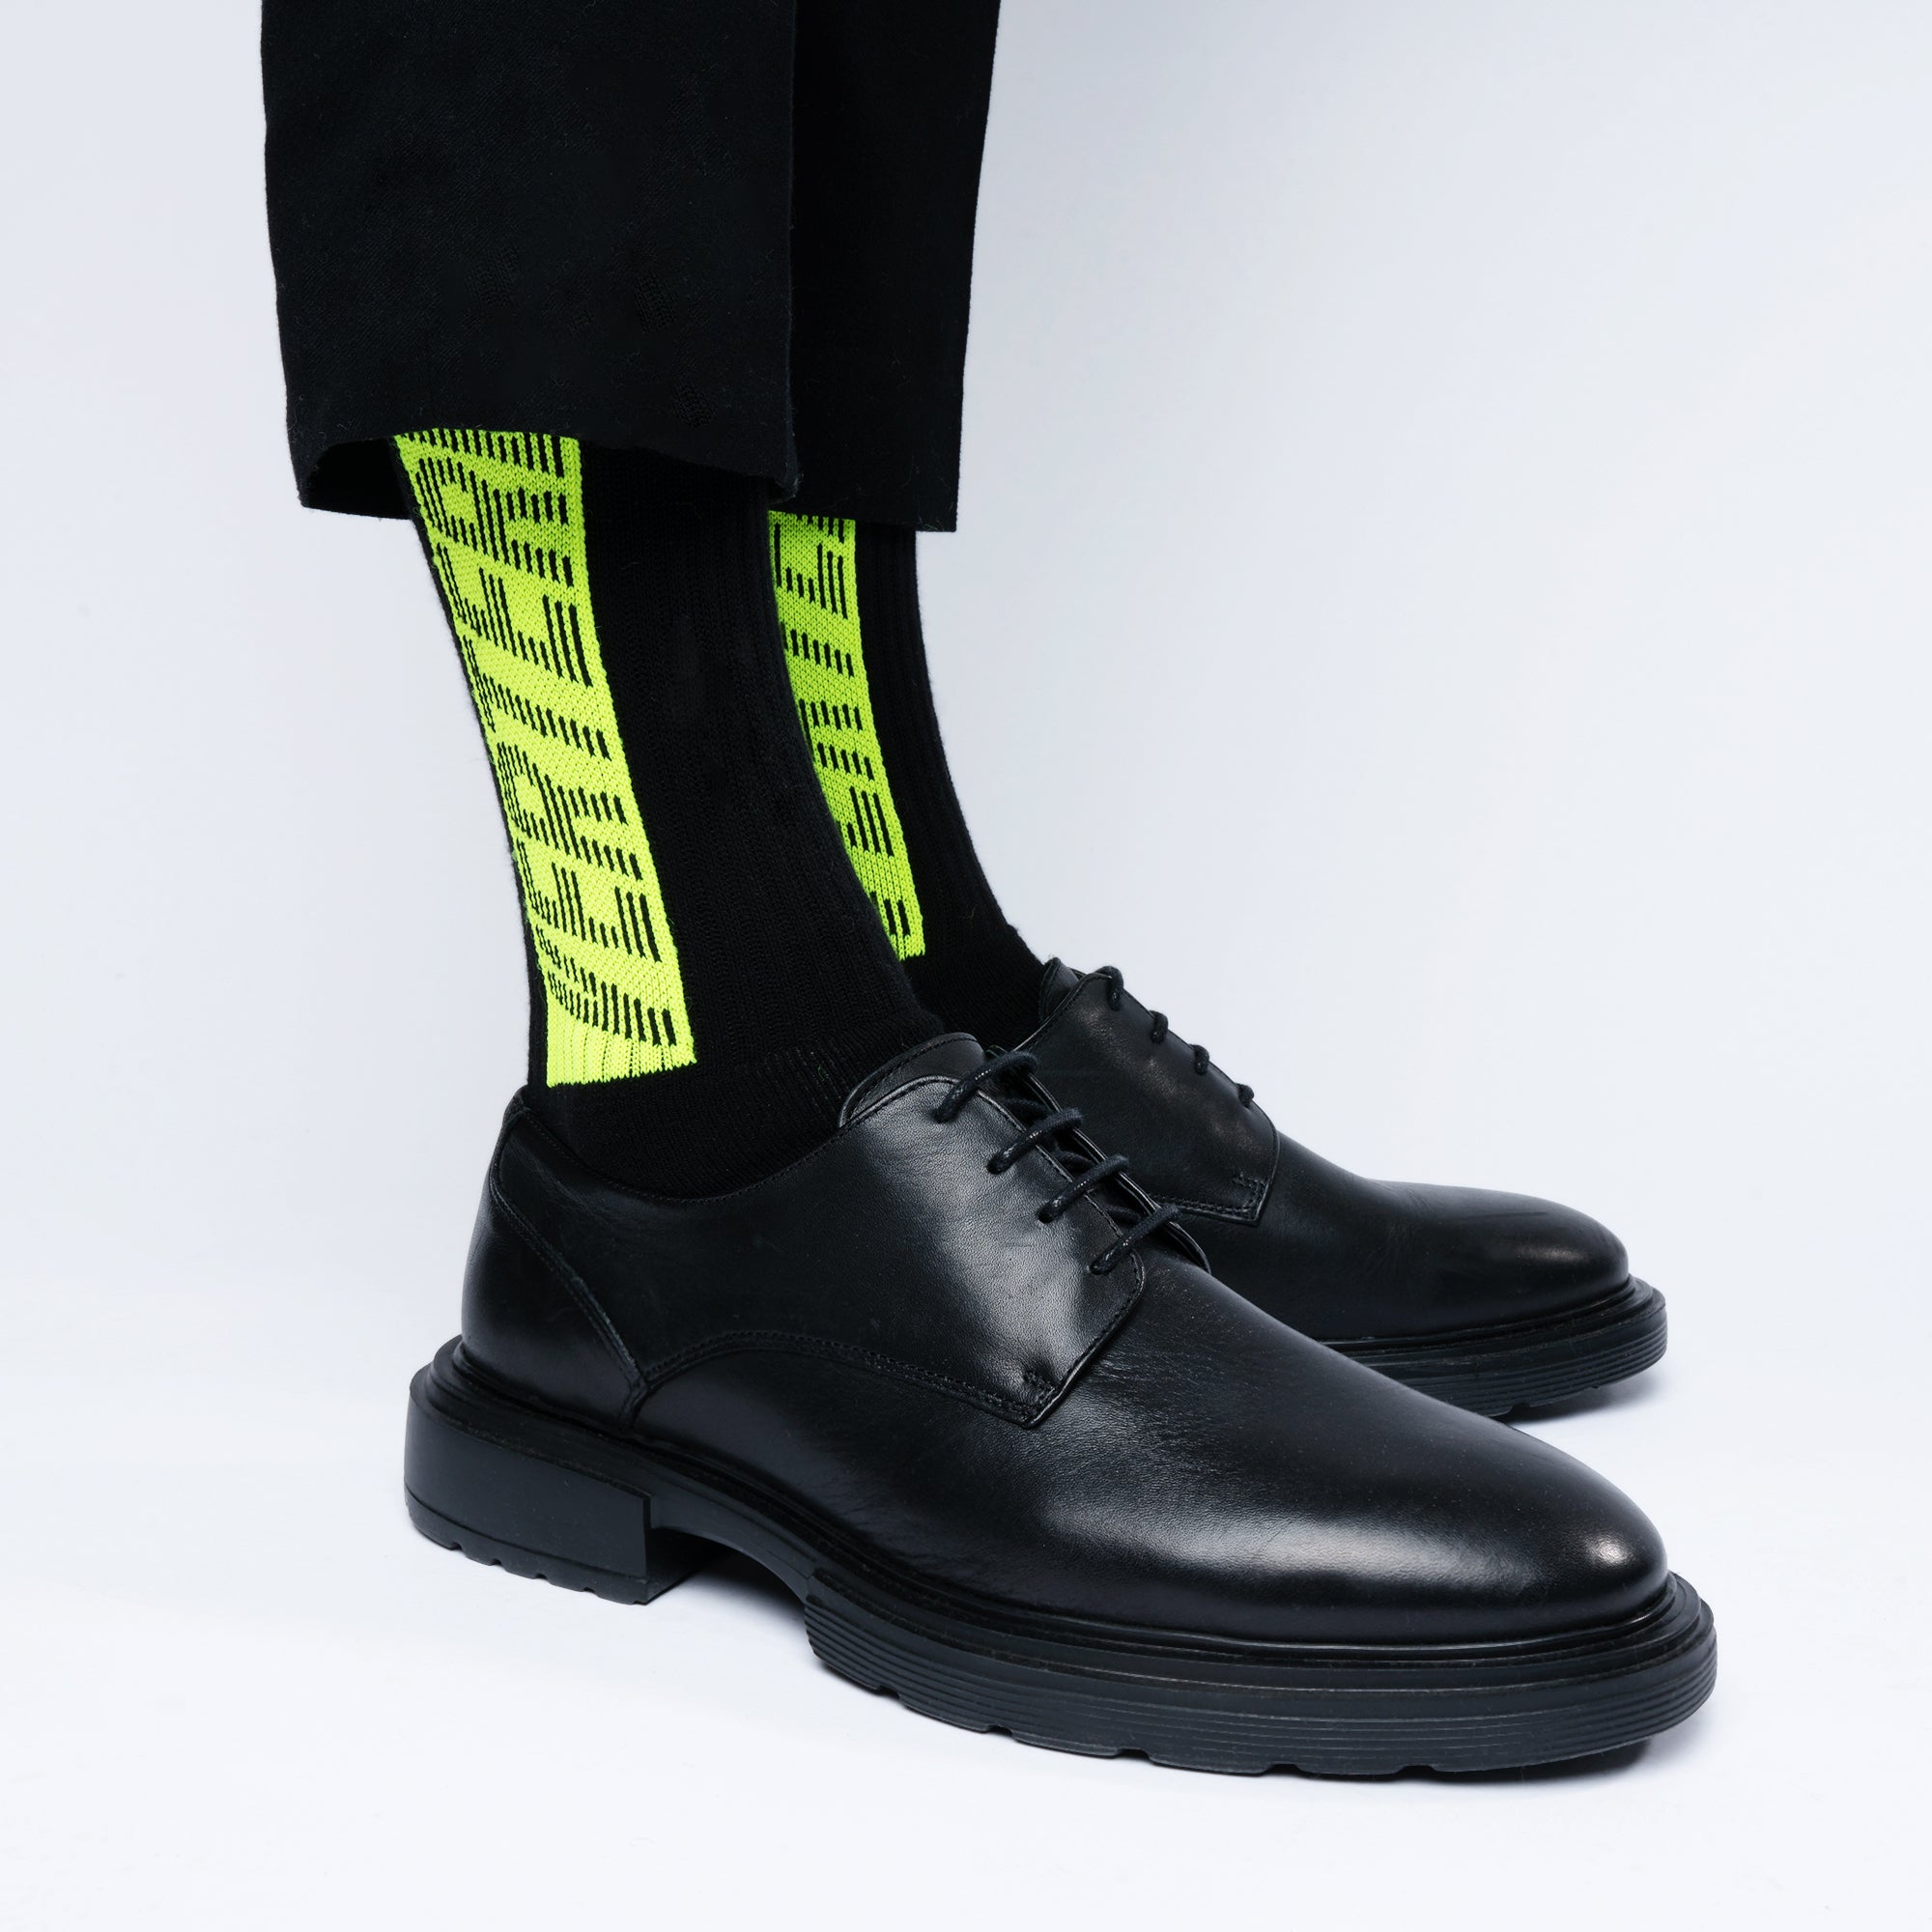 TENNIS SOCKS BEAM - BLACK